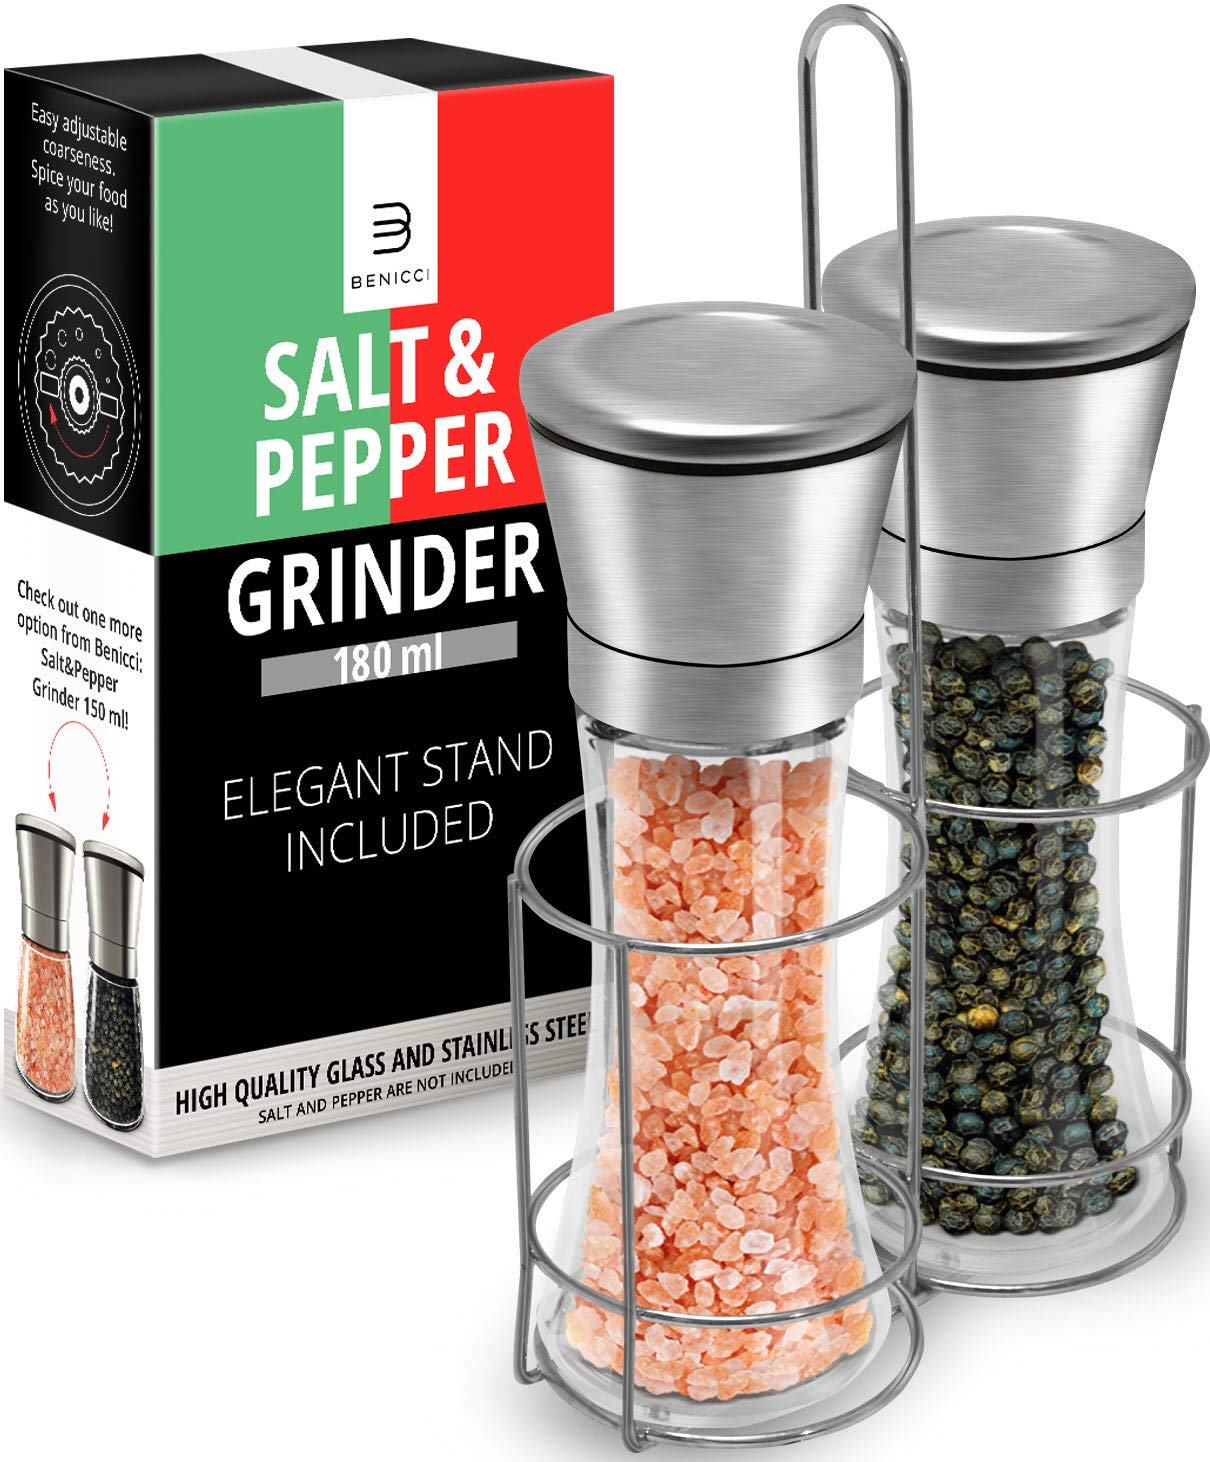 Salt & Pepper Grinder Set - 2 Tall 6 Oz Glass - 180 ml Spice and Sea Salt Shakers With BONUS Stand - Adjustable Coarseness Mills - Easy To Clean - Stainless Steel & Ceramic Rotor - BPA Free by Benicci